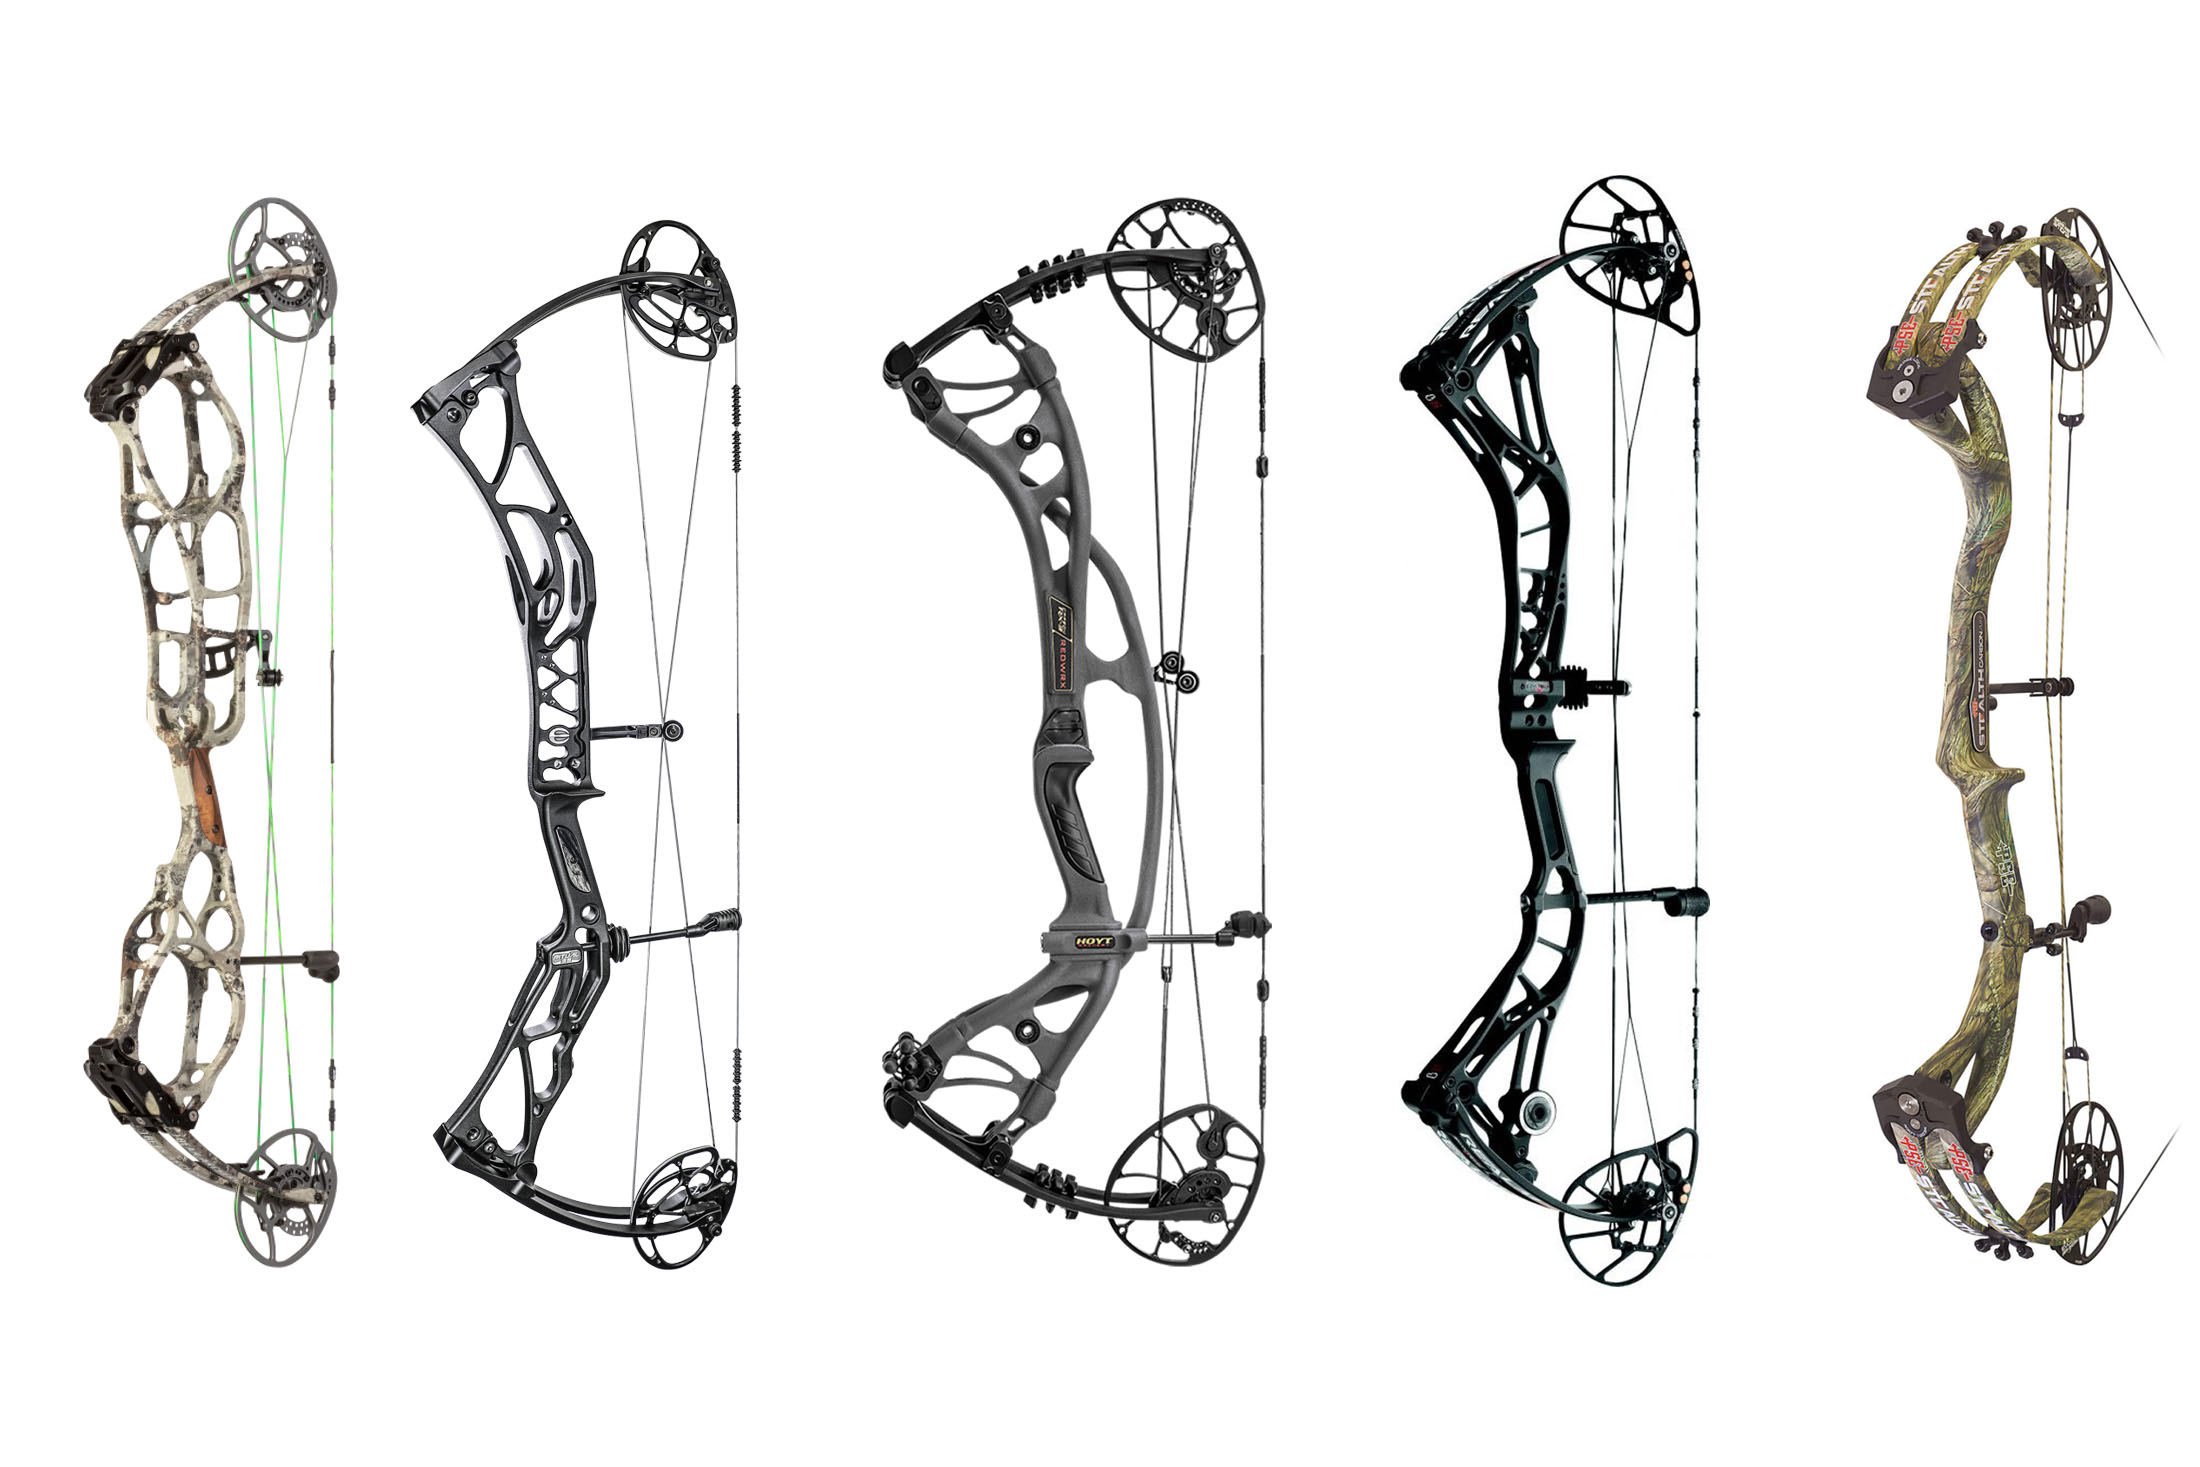 Best Hunting Compound Bow 2019 Best Bows of 2019: Top Flagship Compounds From ATA | GearJunkie